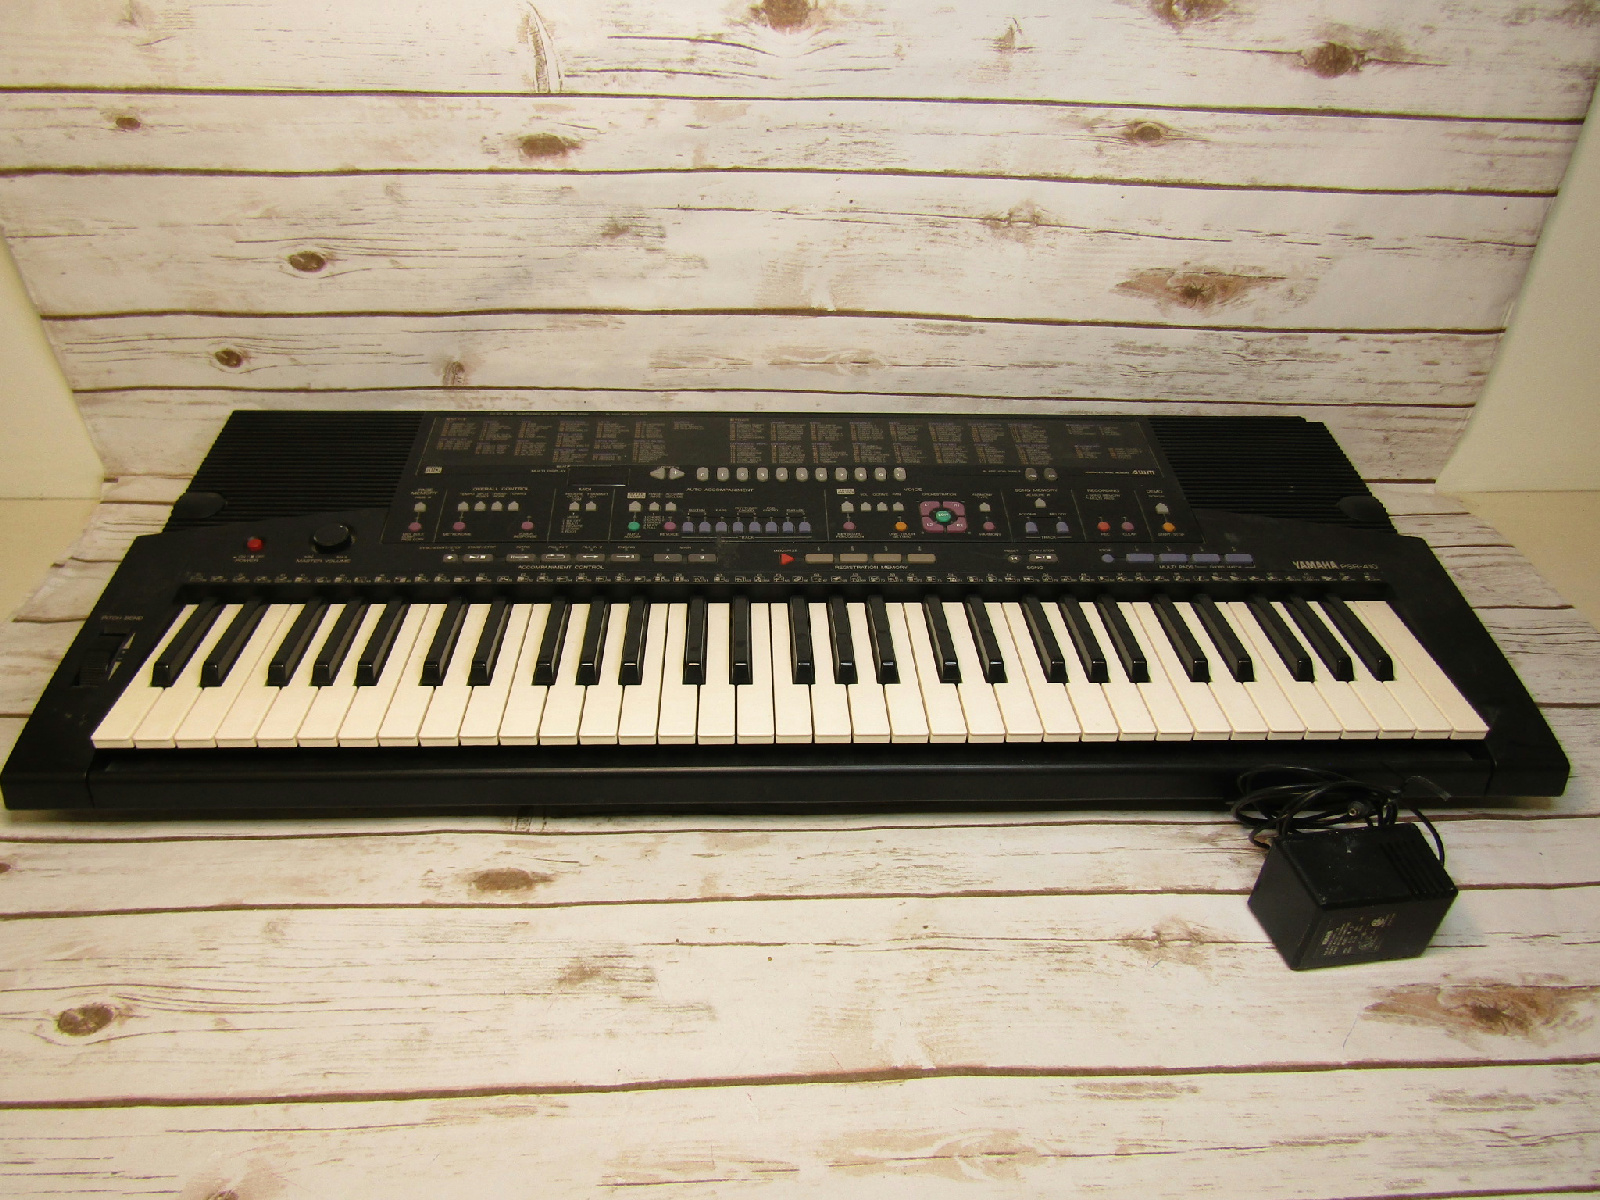 yamaha psr 410 electric piano synthesizer keyboard. Black Bedroom Furniture Sets. Home Design Ideas